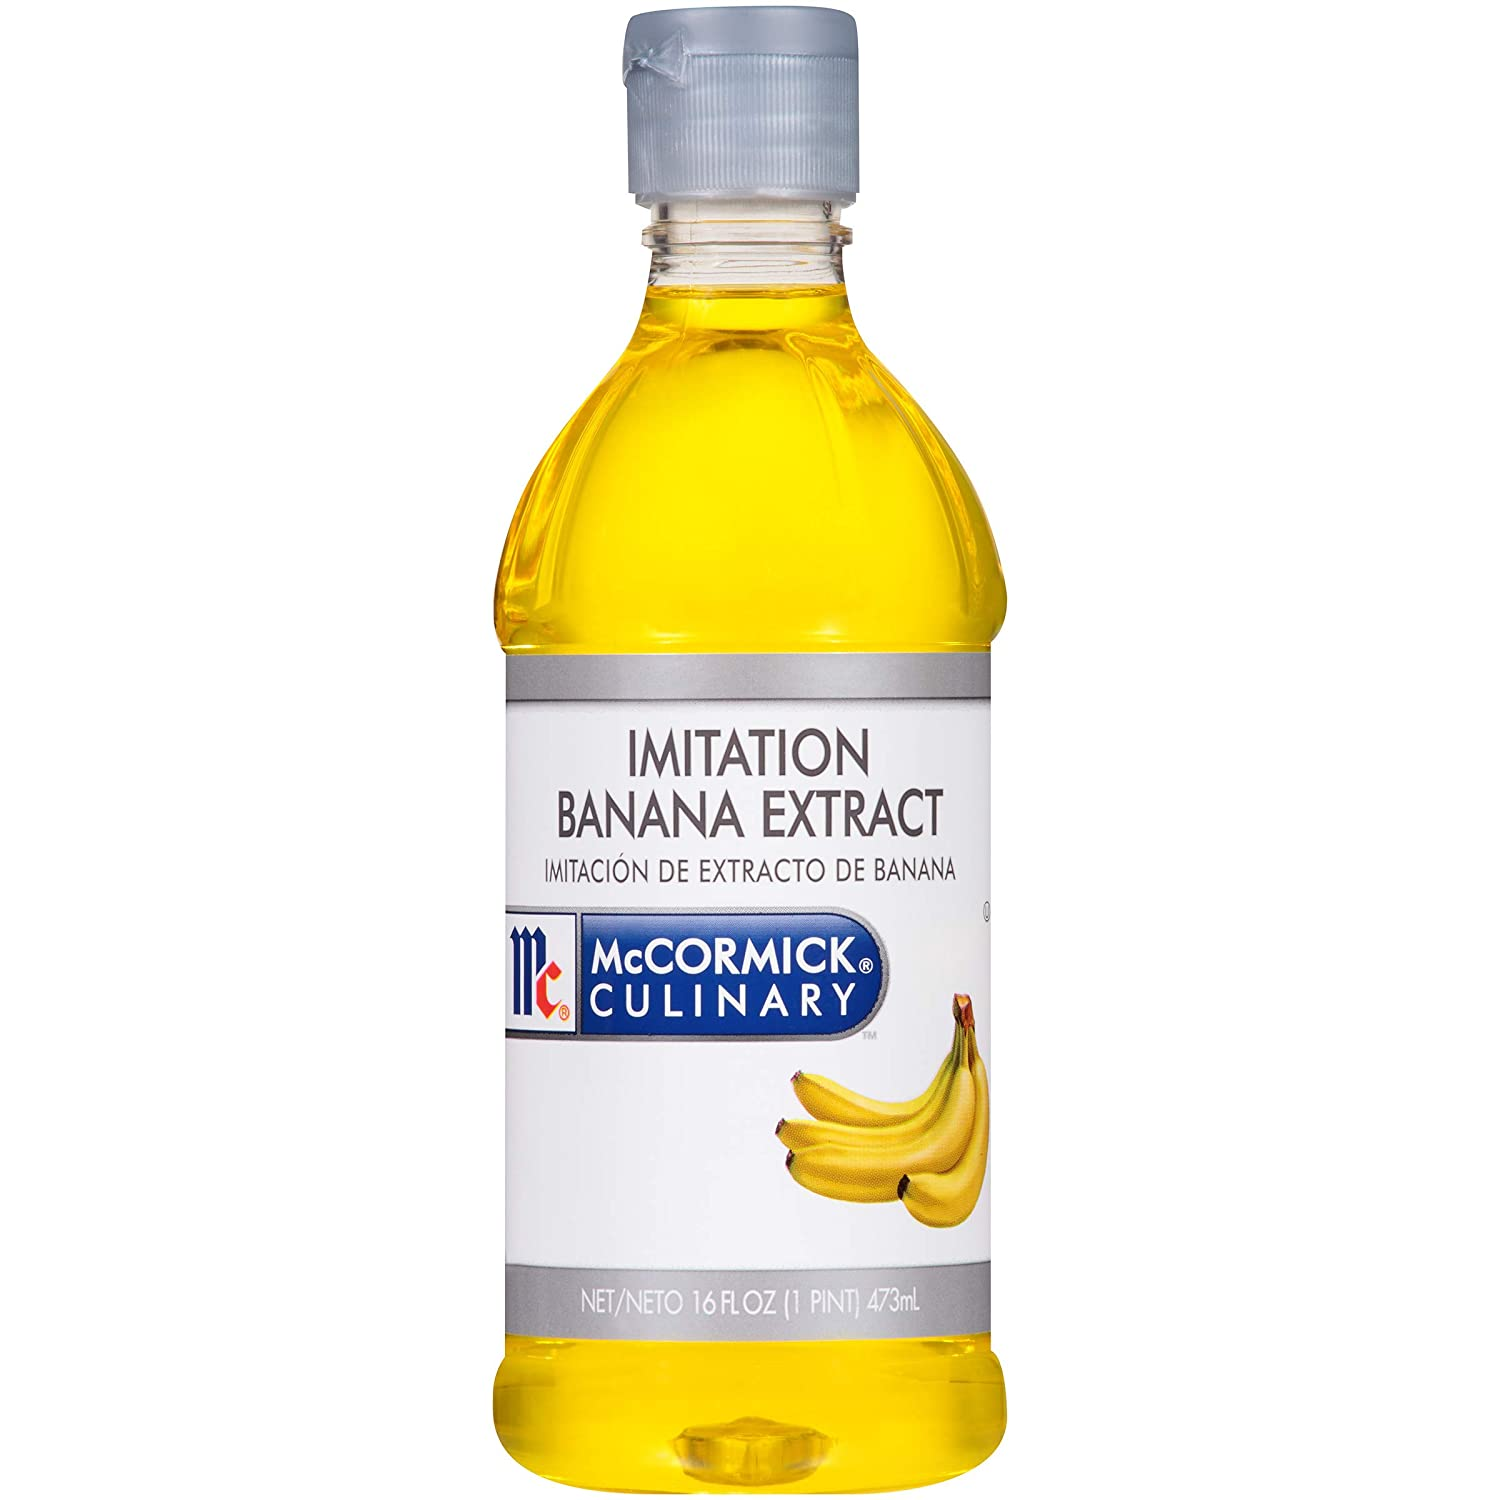 McCormick Culinary Imitation Banana Extract, 16 fl oz